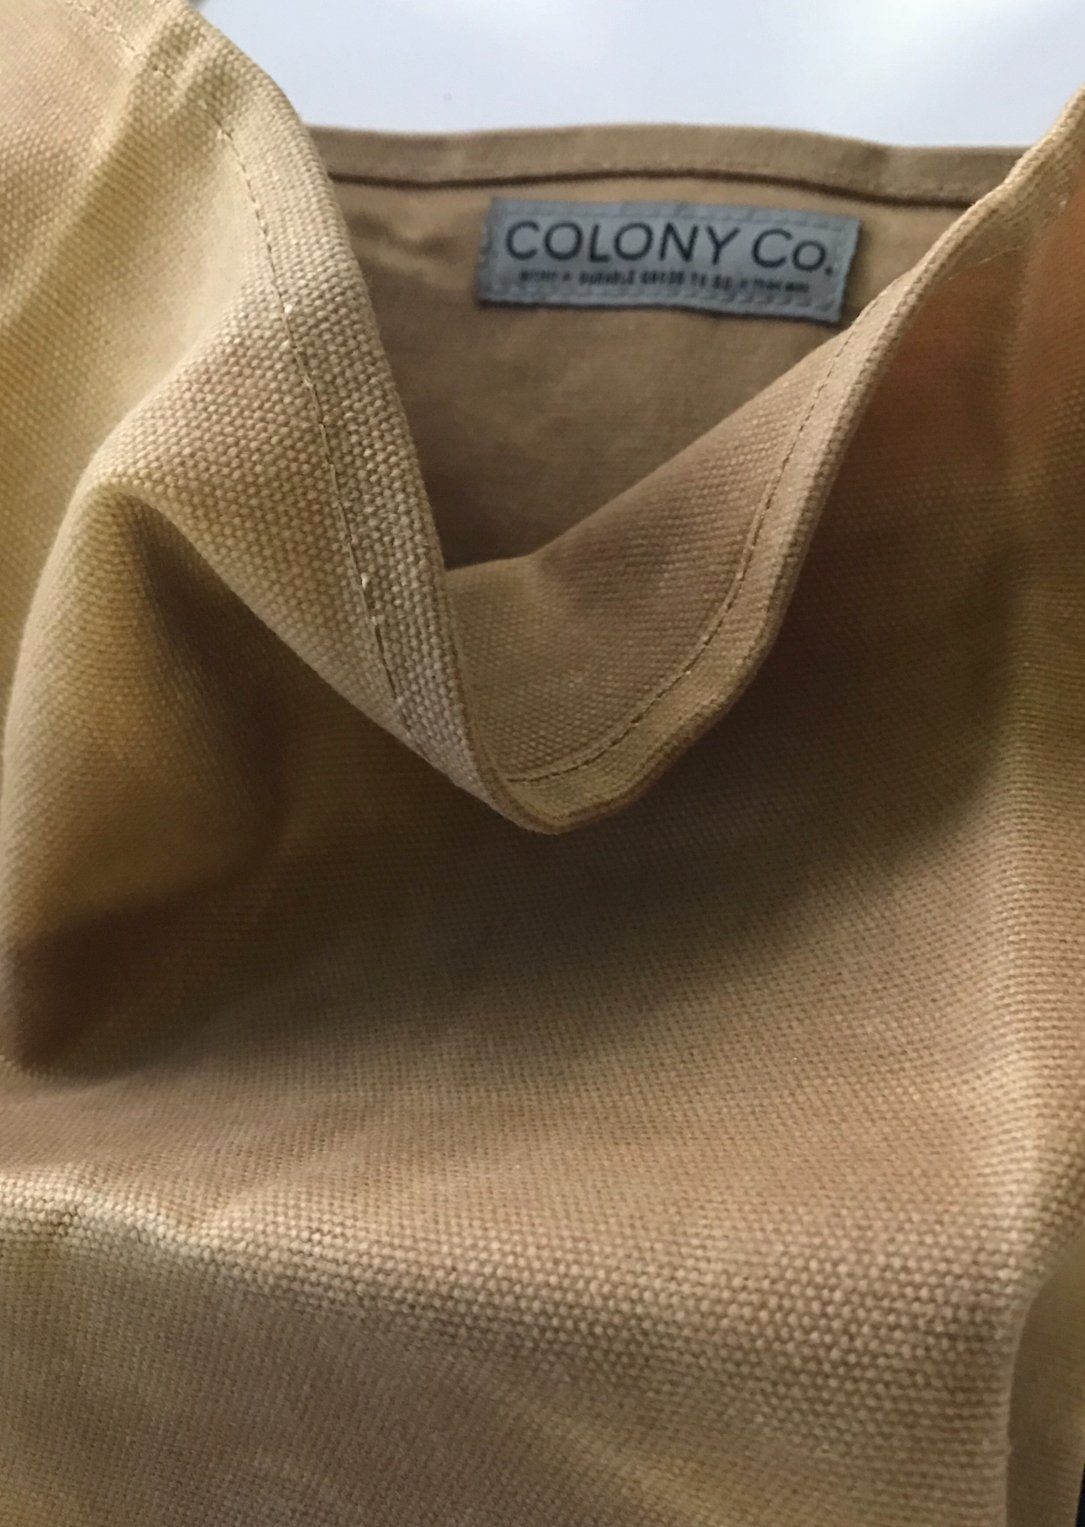 Reusable Grocery Bag | Waxed Canvas | Heavy-Duty | Biodegradable | Foldable | Brown by COLONY CO (Image #3)